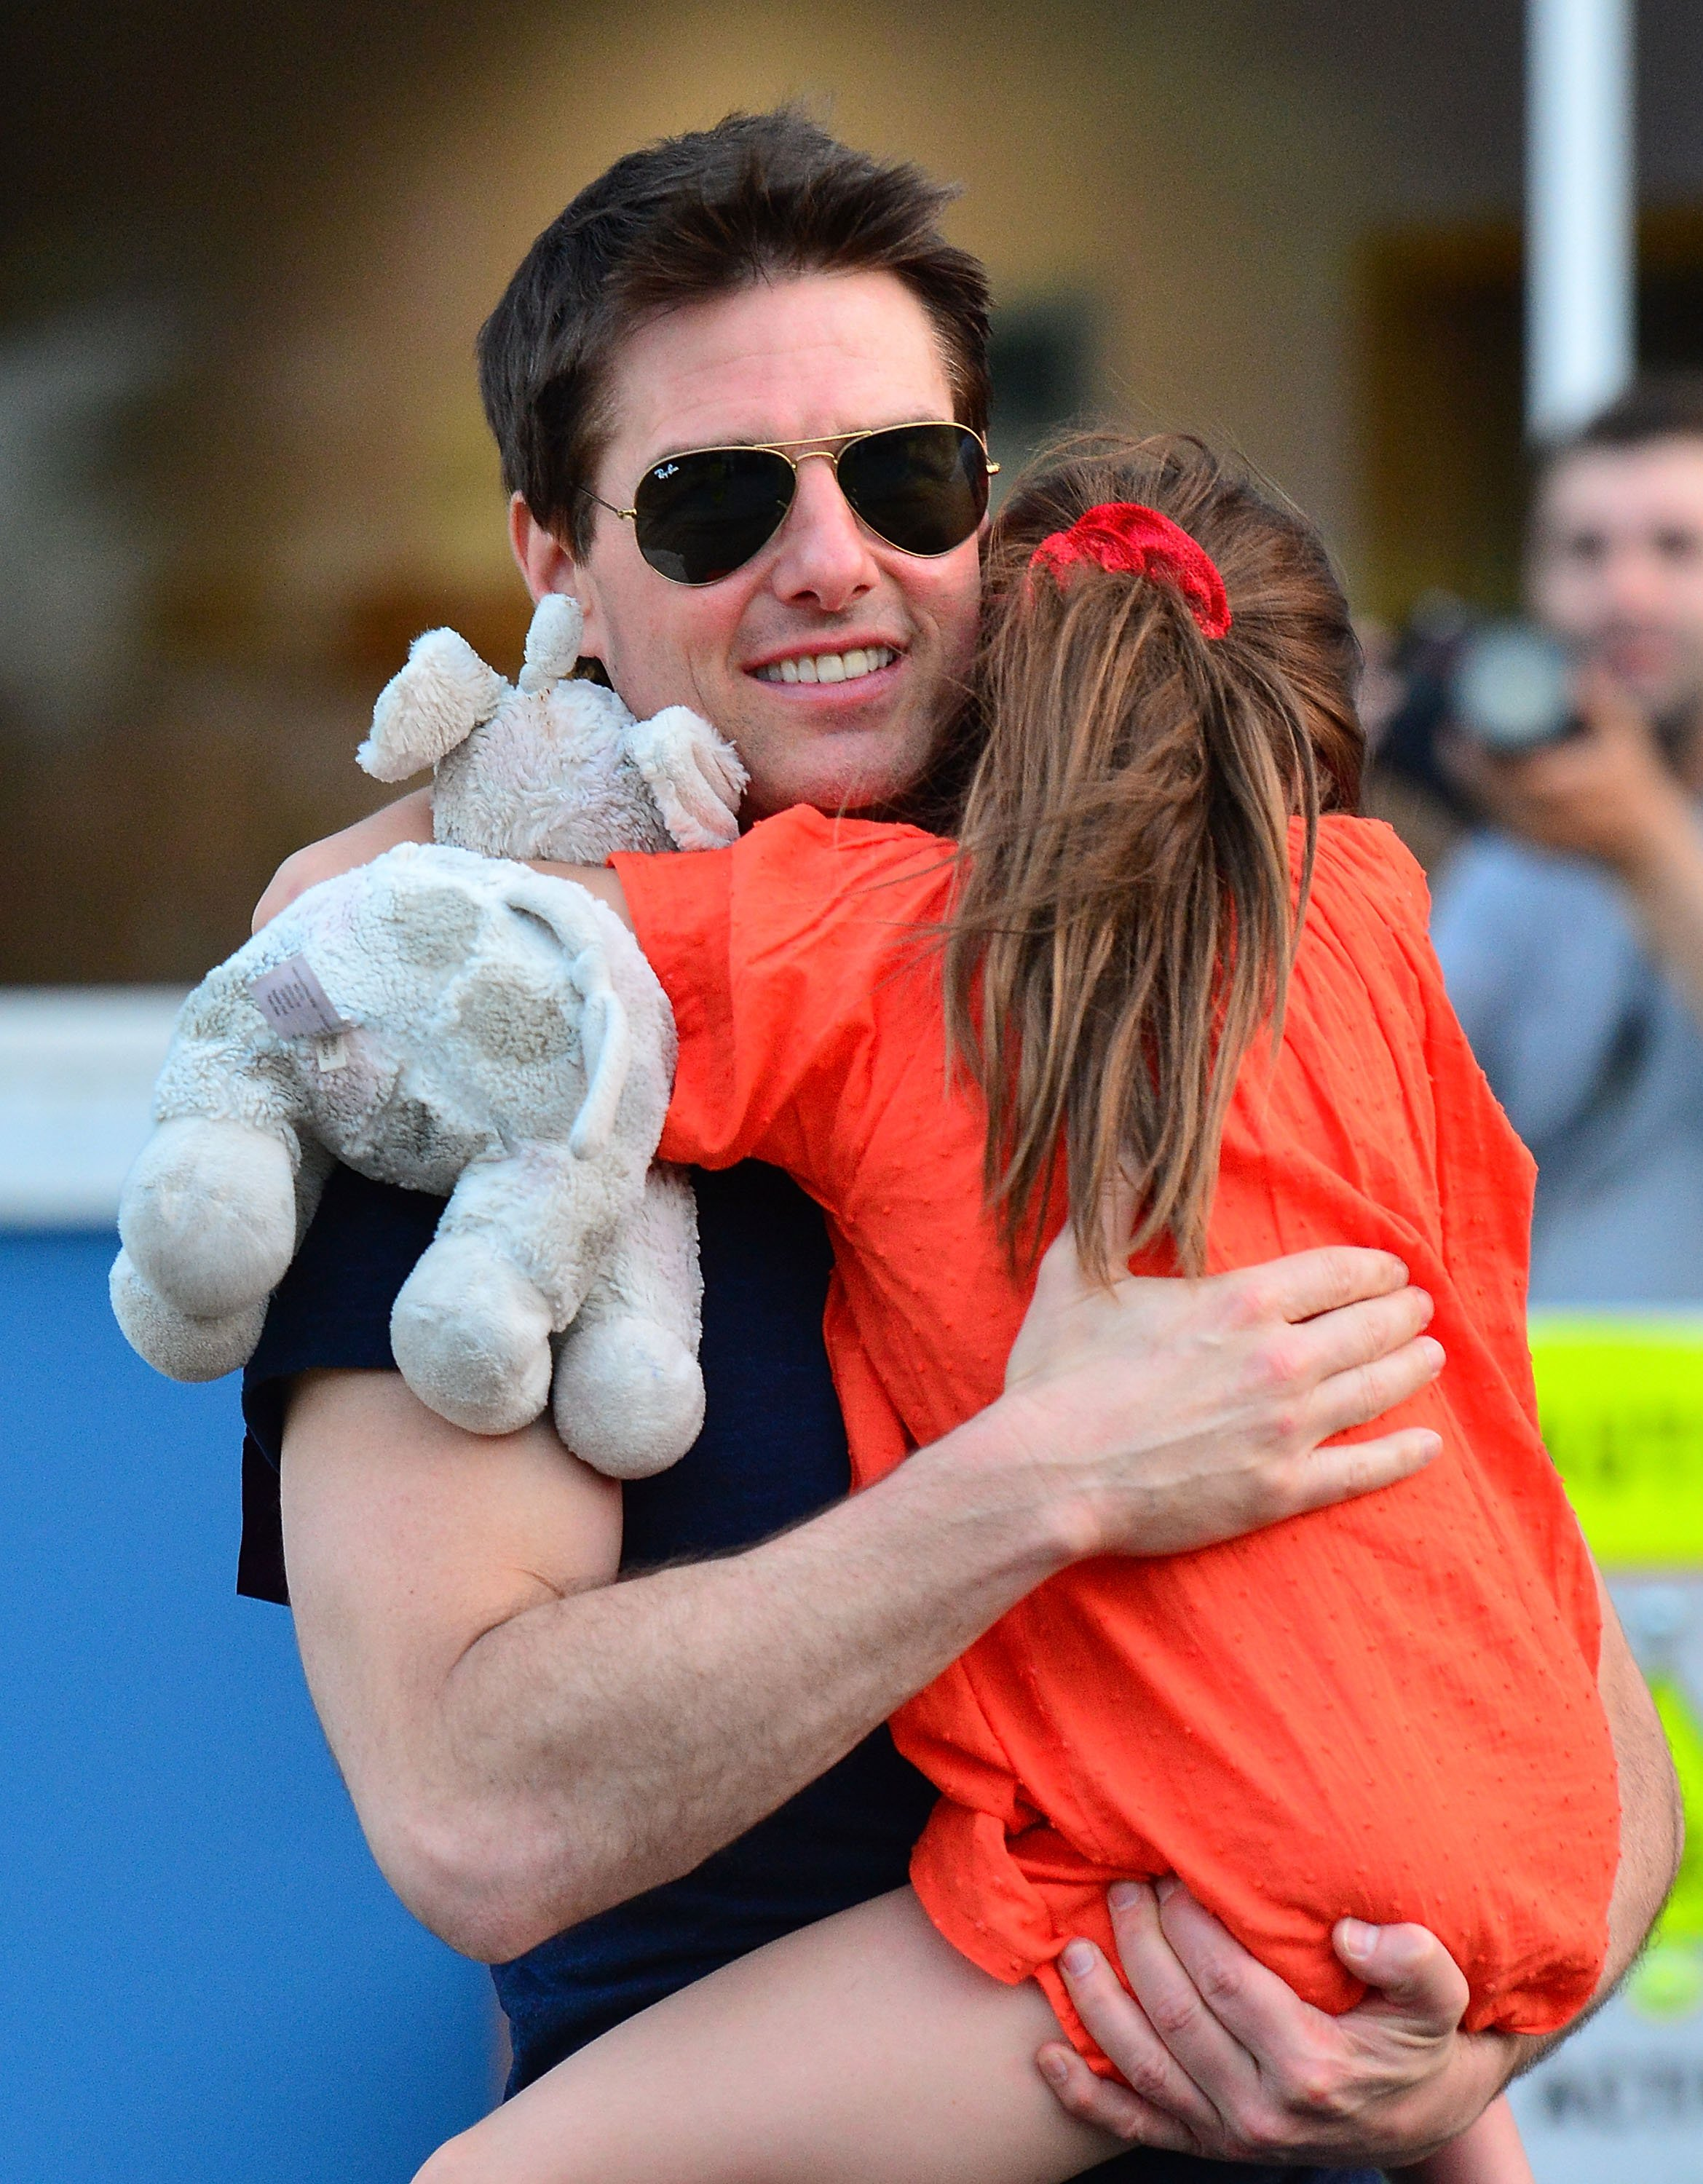 Tom Cruise holding Suri Cruise while leaving the Chelsea Piers, 2012, New York City. | Photo: Getty Images